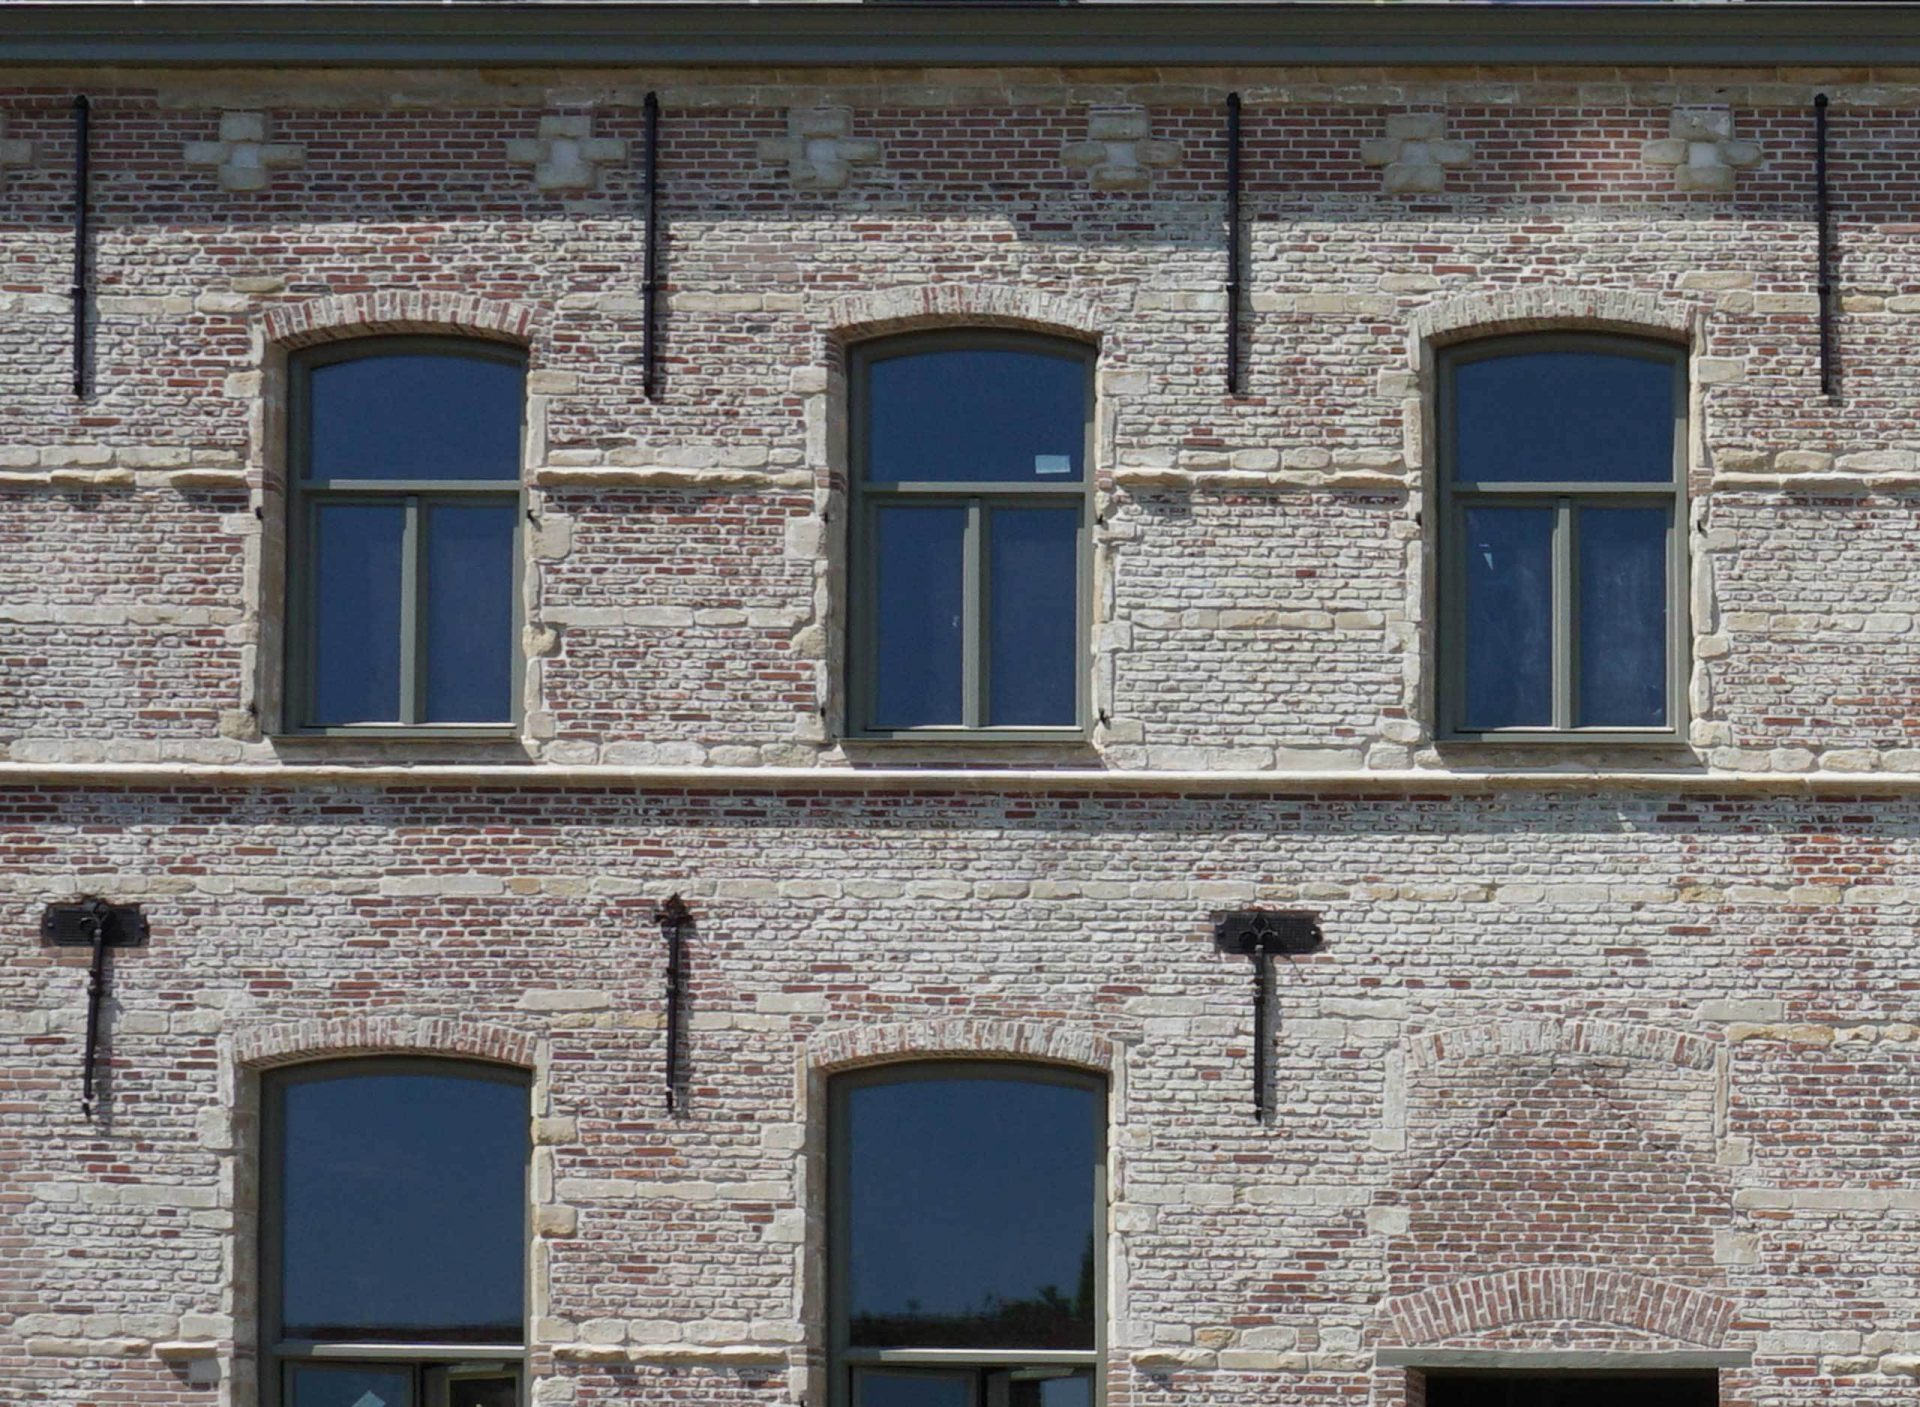 Mechelen Elevation Windows